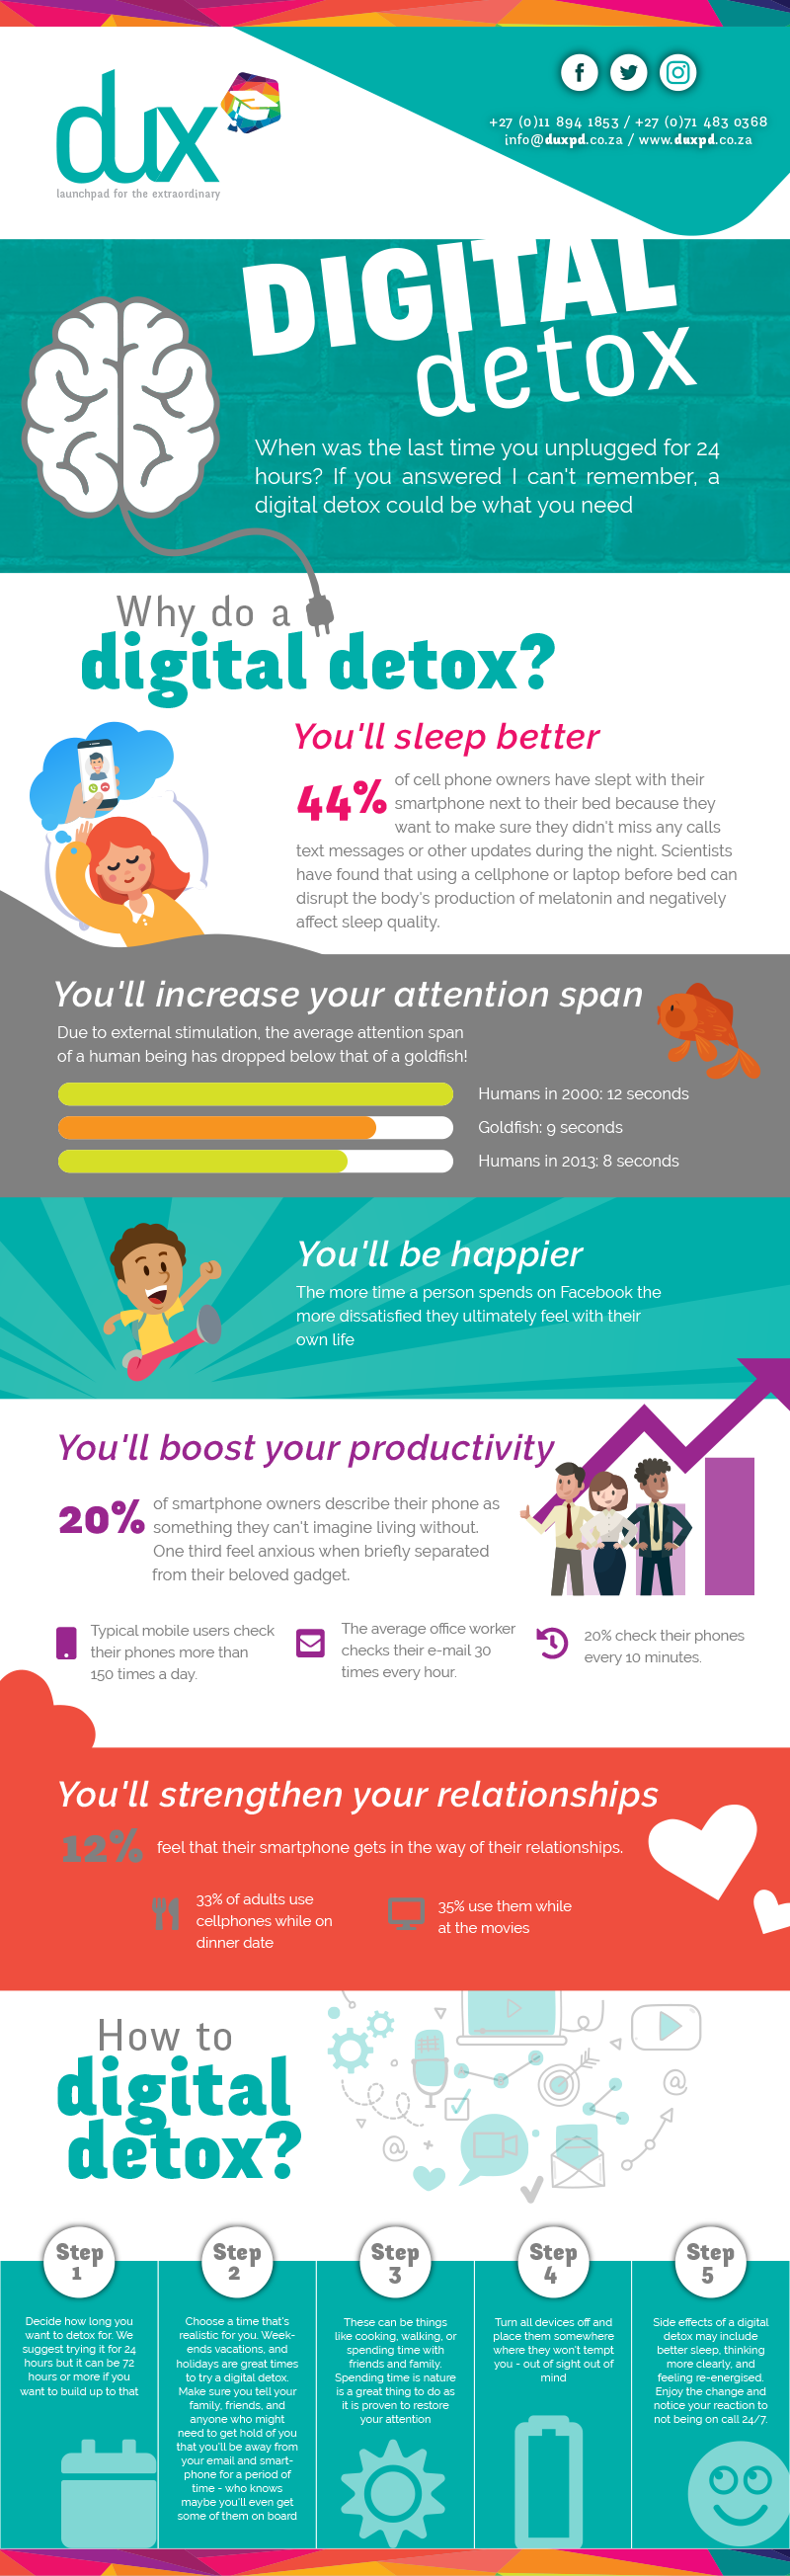 dux-digital-detox-infographic